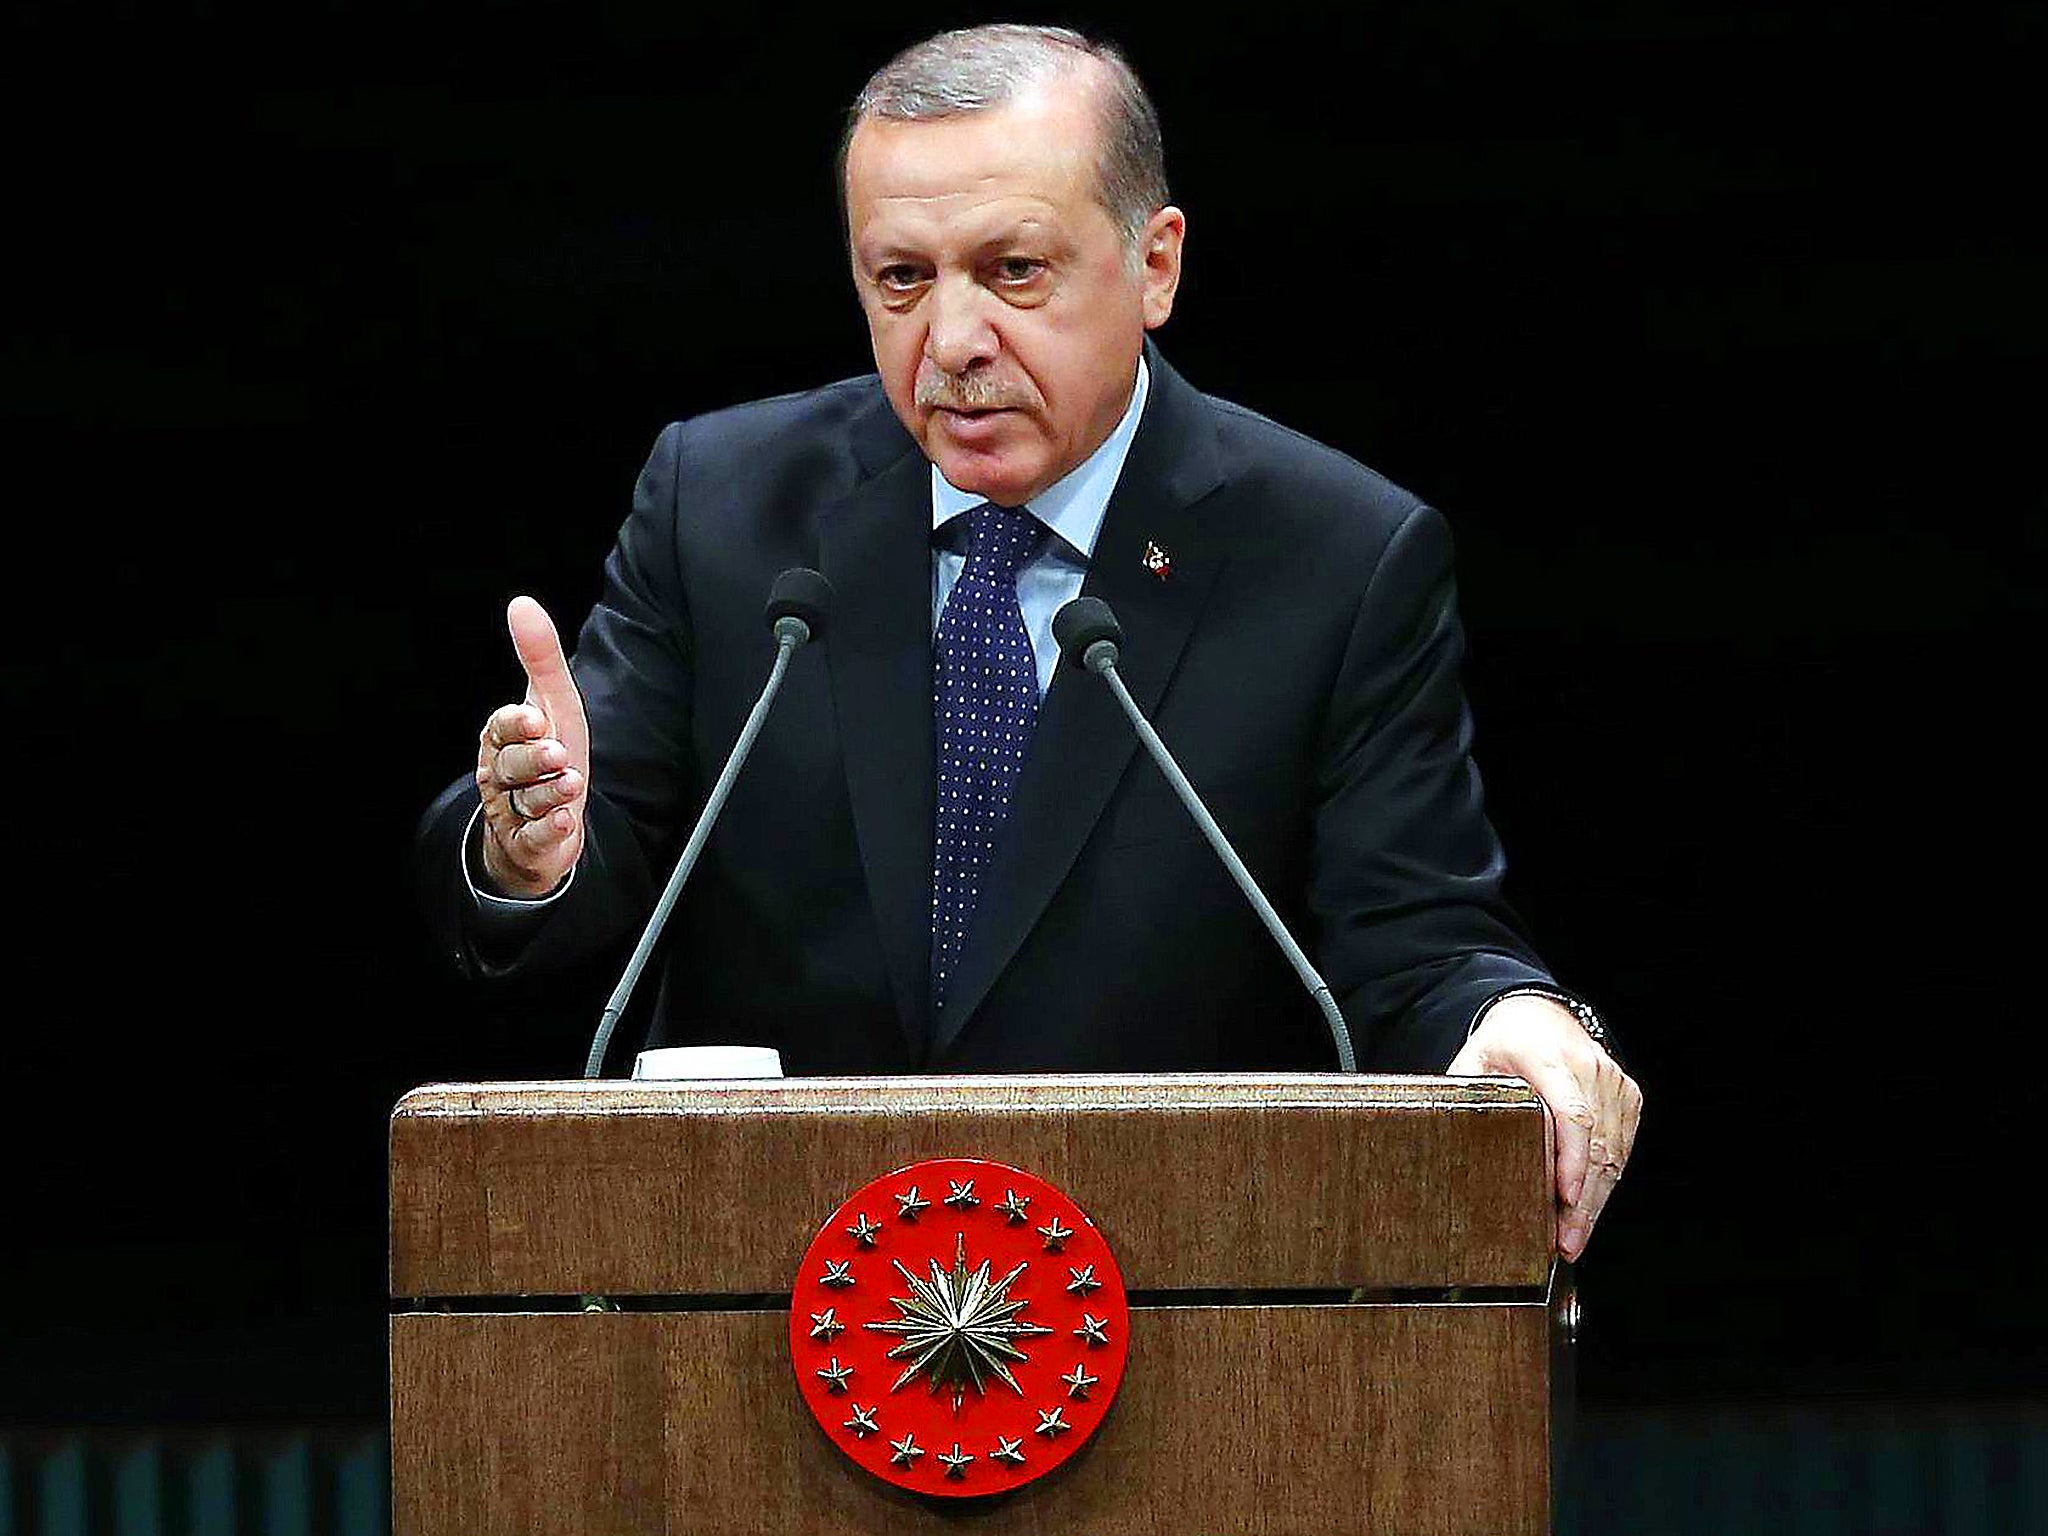 Turkey Submits Bill To Expand Power Of President Recep